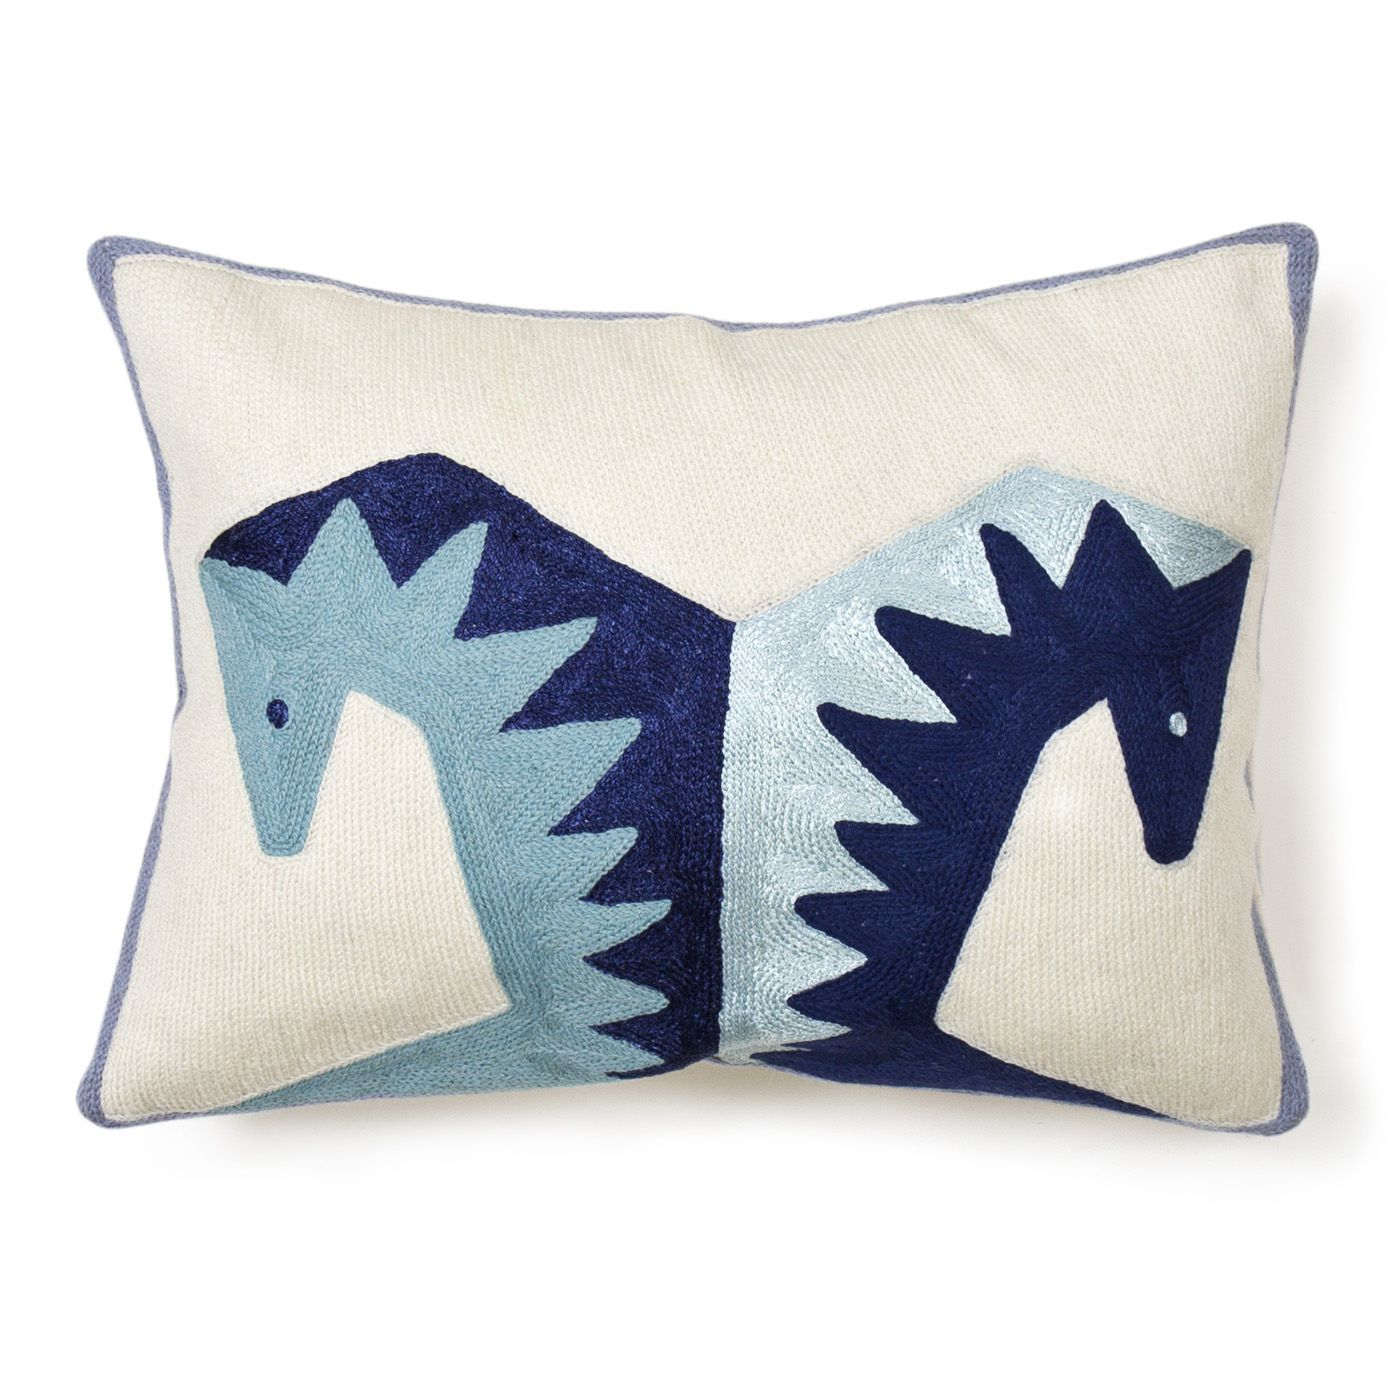 parc green pi in and midnight couch pillow pattern throw cover blue adler zag attract white zig jonathan pillows way modern for